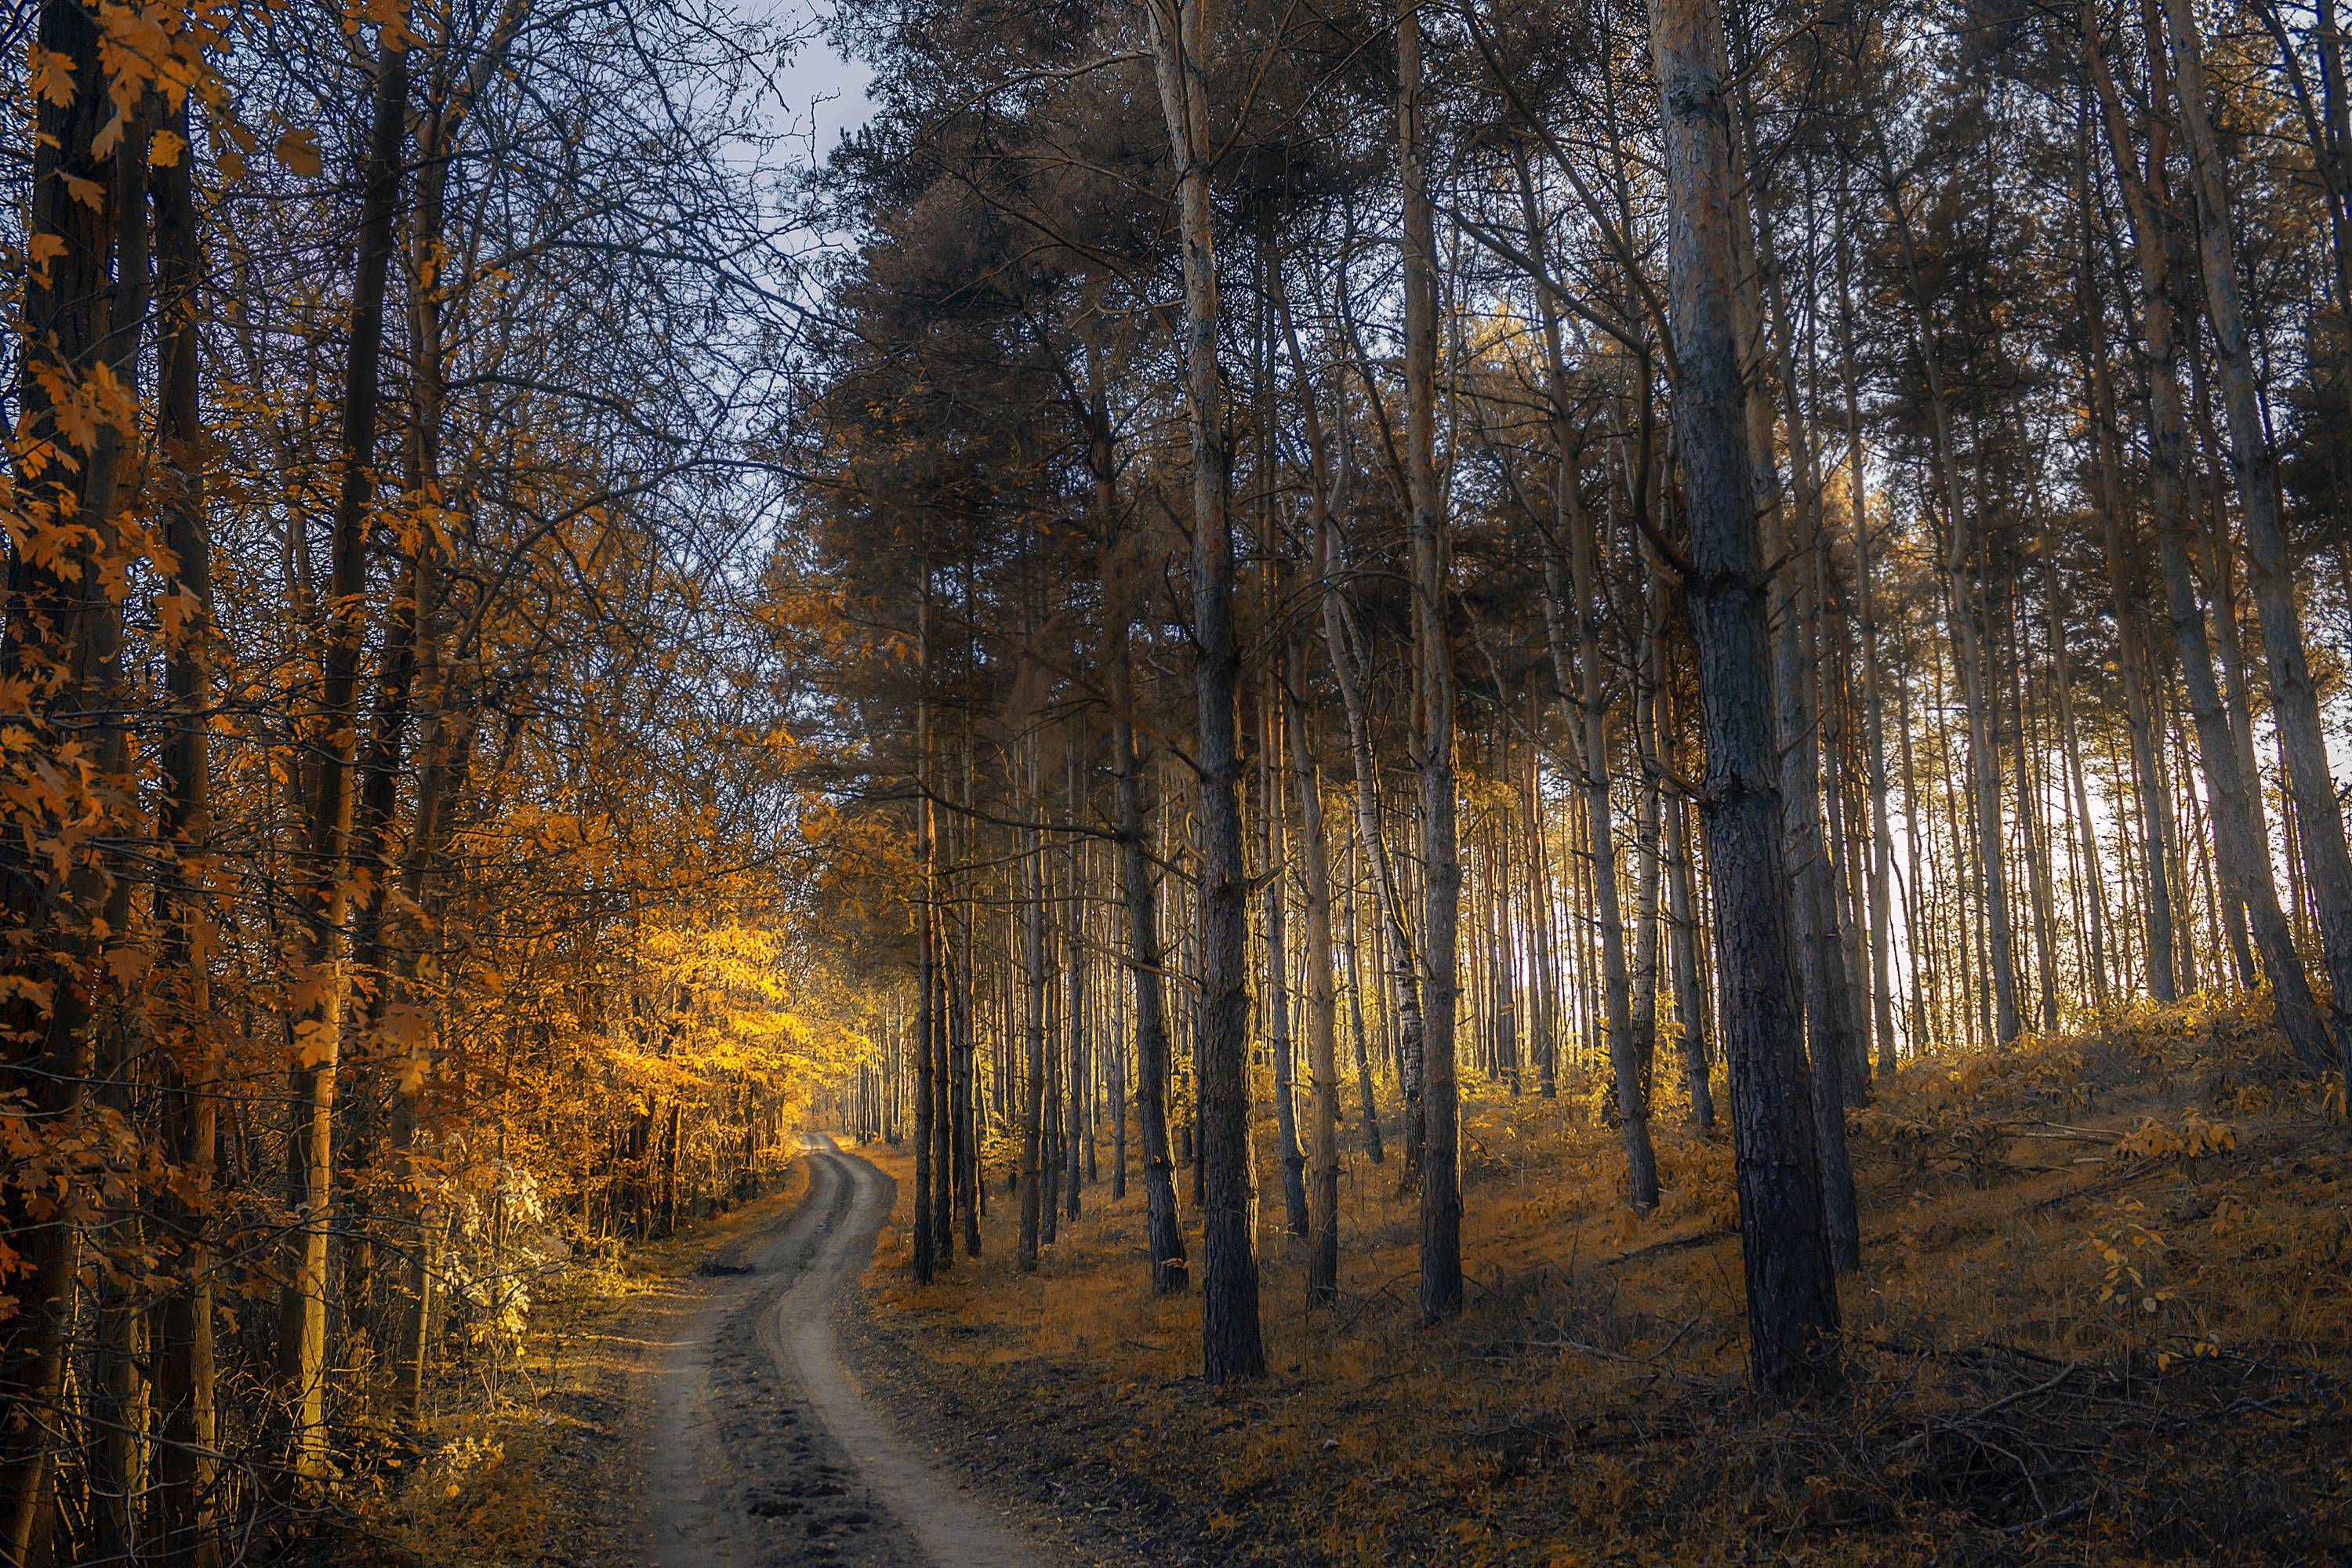 135370 download wallpaper Grass, Nature, Trees, Autumn, Forest, Path screensavers and pictures for free